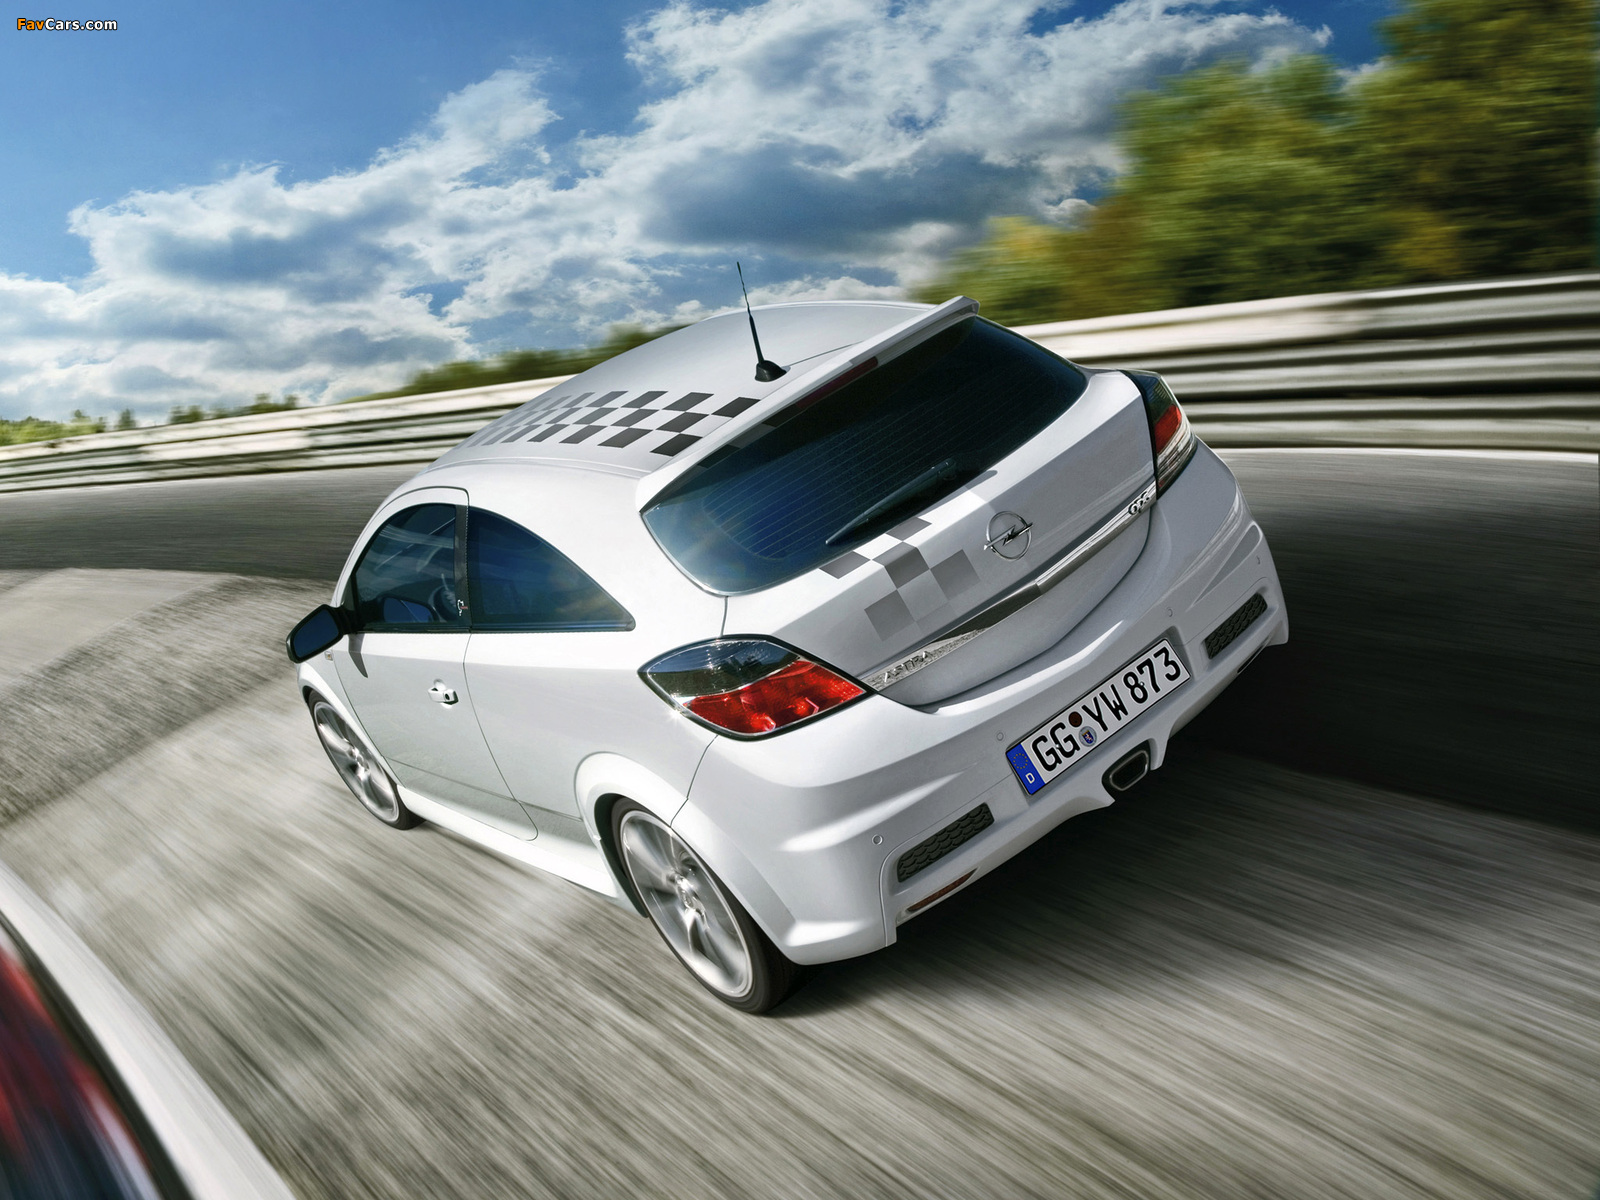 Opel Astra Opc Nürburgring Edition H 2008 Wallpapers 1600x1200